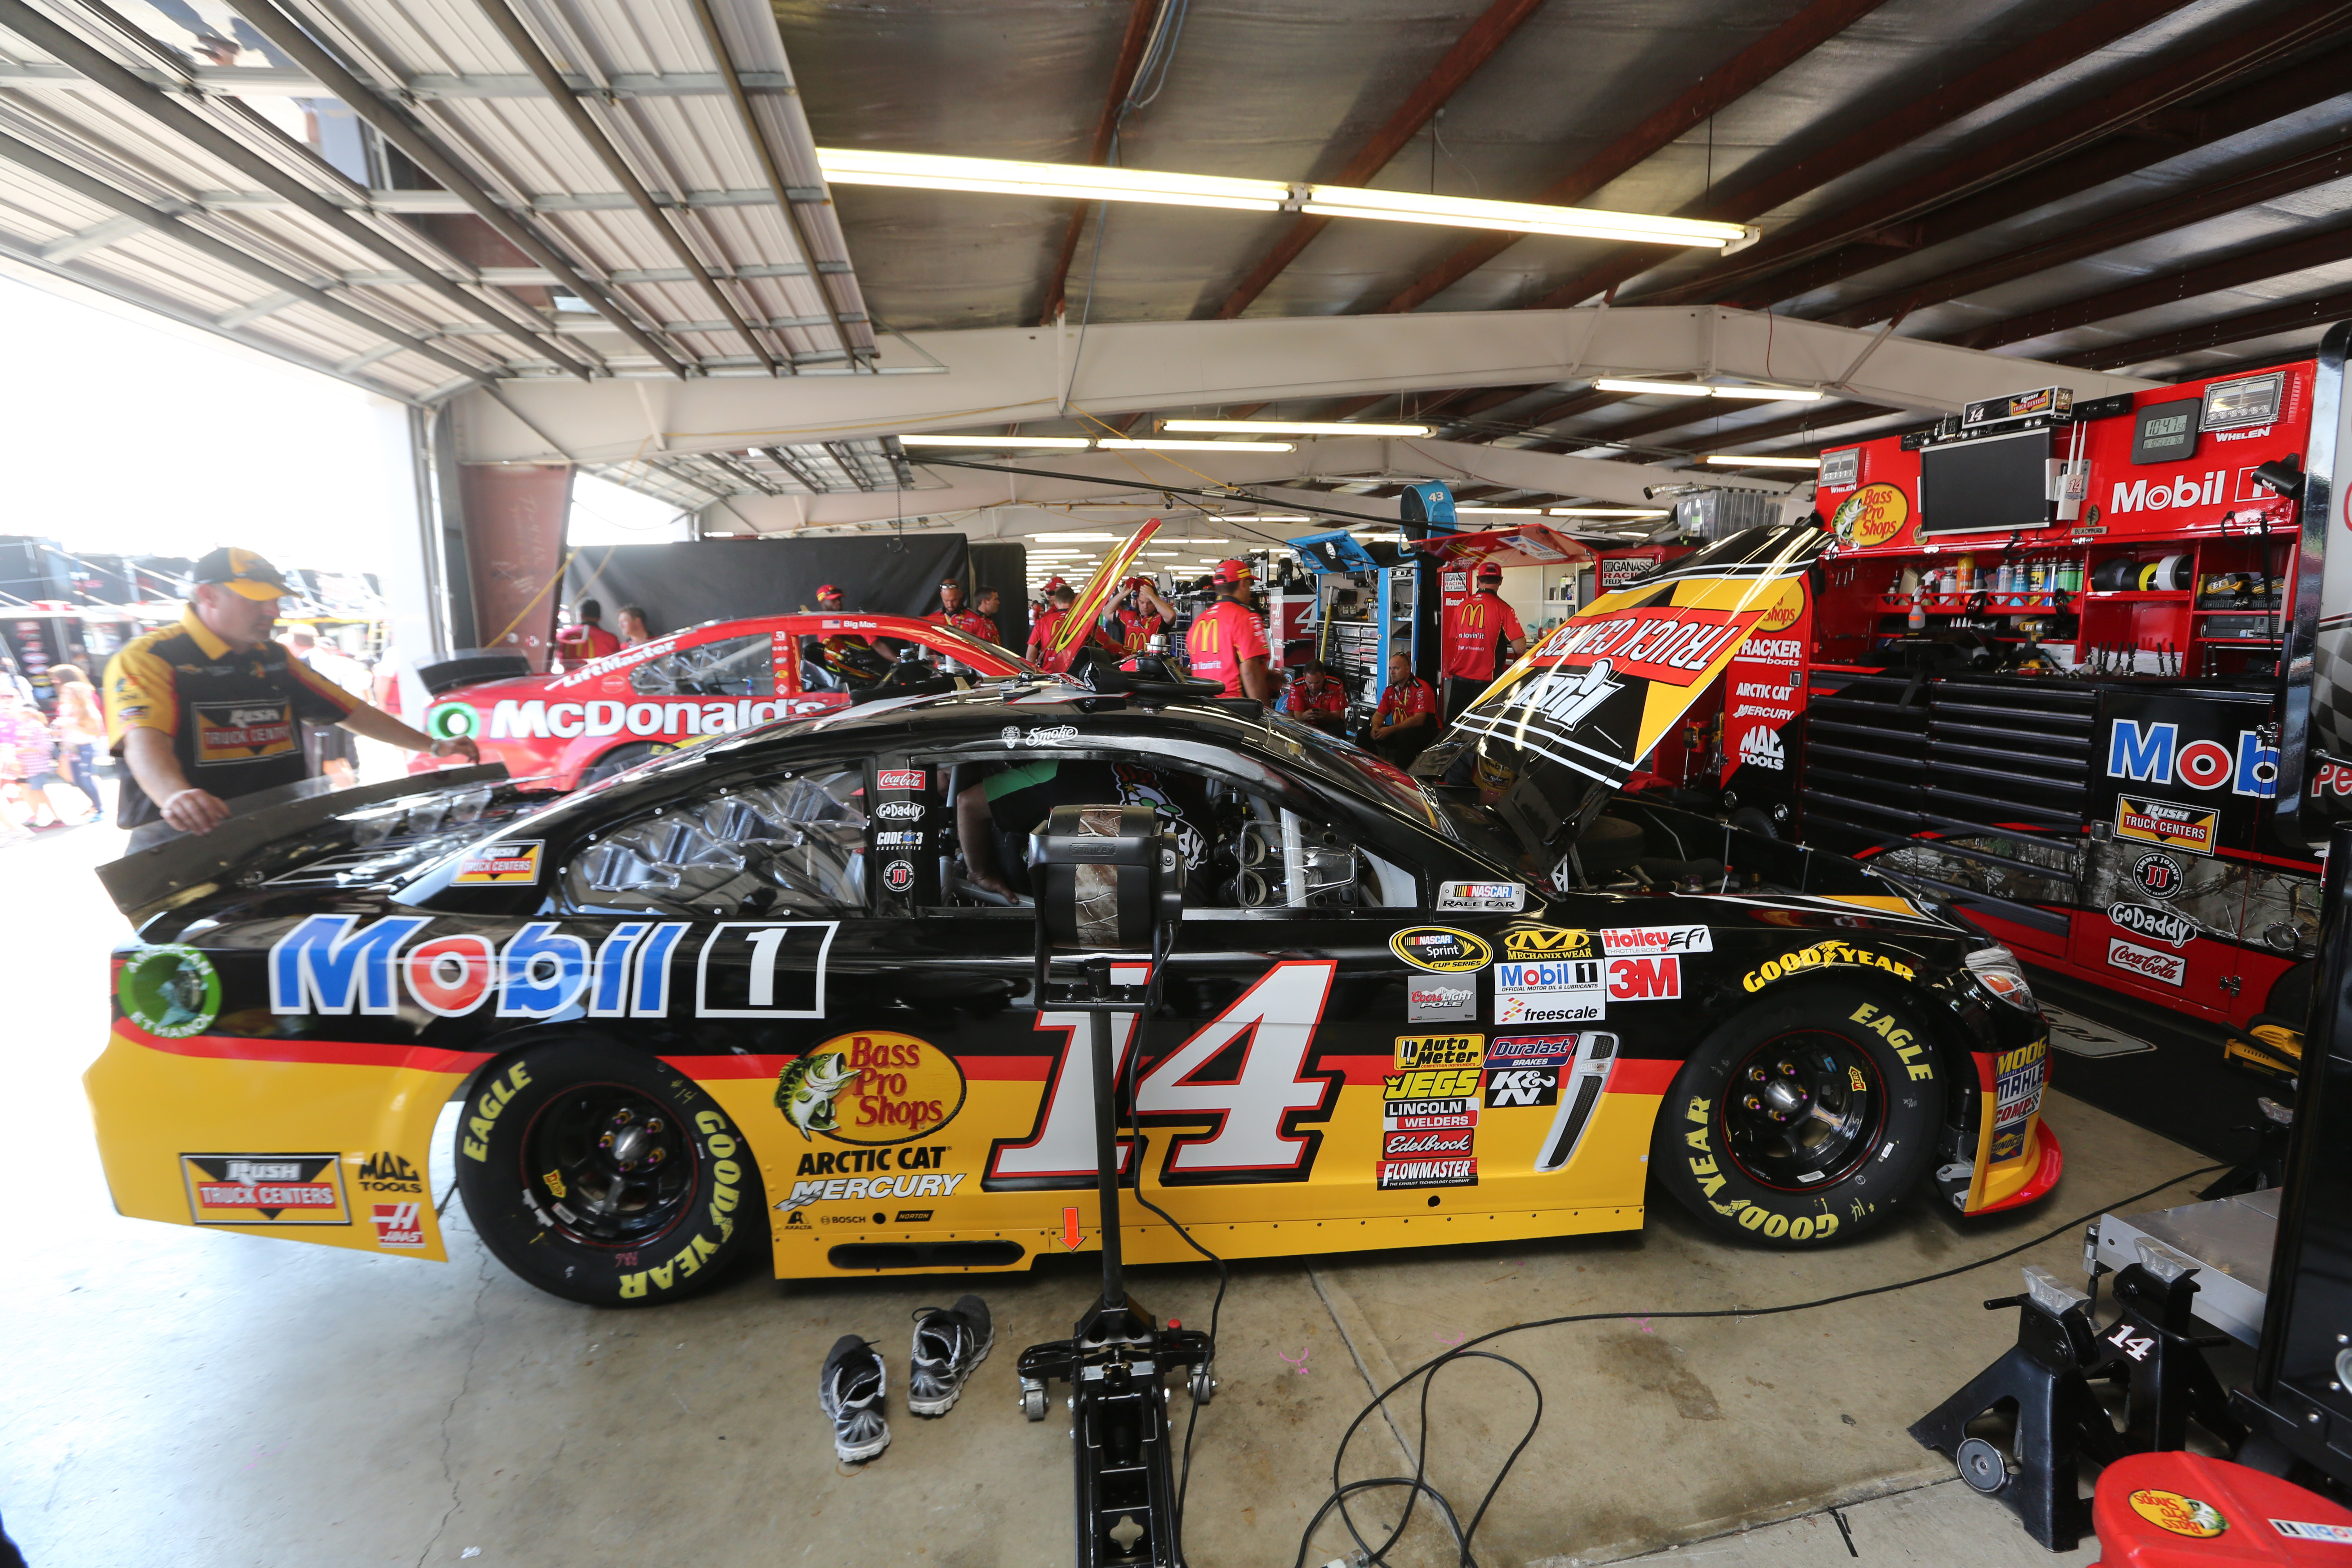 The #14 Rush Truck Centers/Mobil 1 Chevrolet is prepared by its crew in the garage area prior to the NASCAR Sprint Cup Series Cheez-It 355 at Watkins Glen International on August 10, 2014 in Watkins Glen, New York.